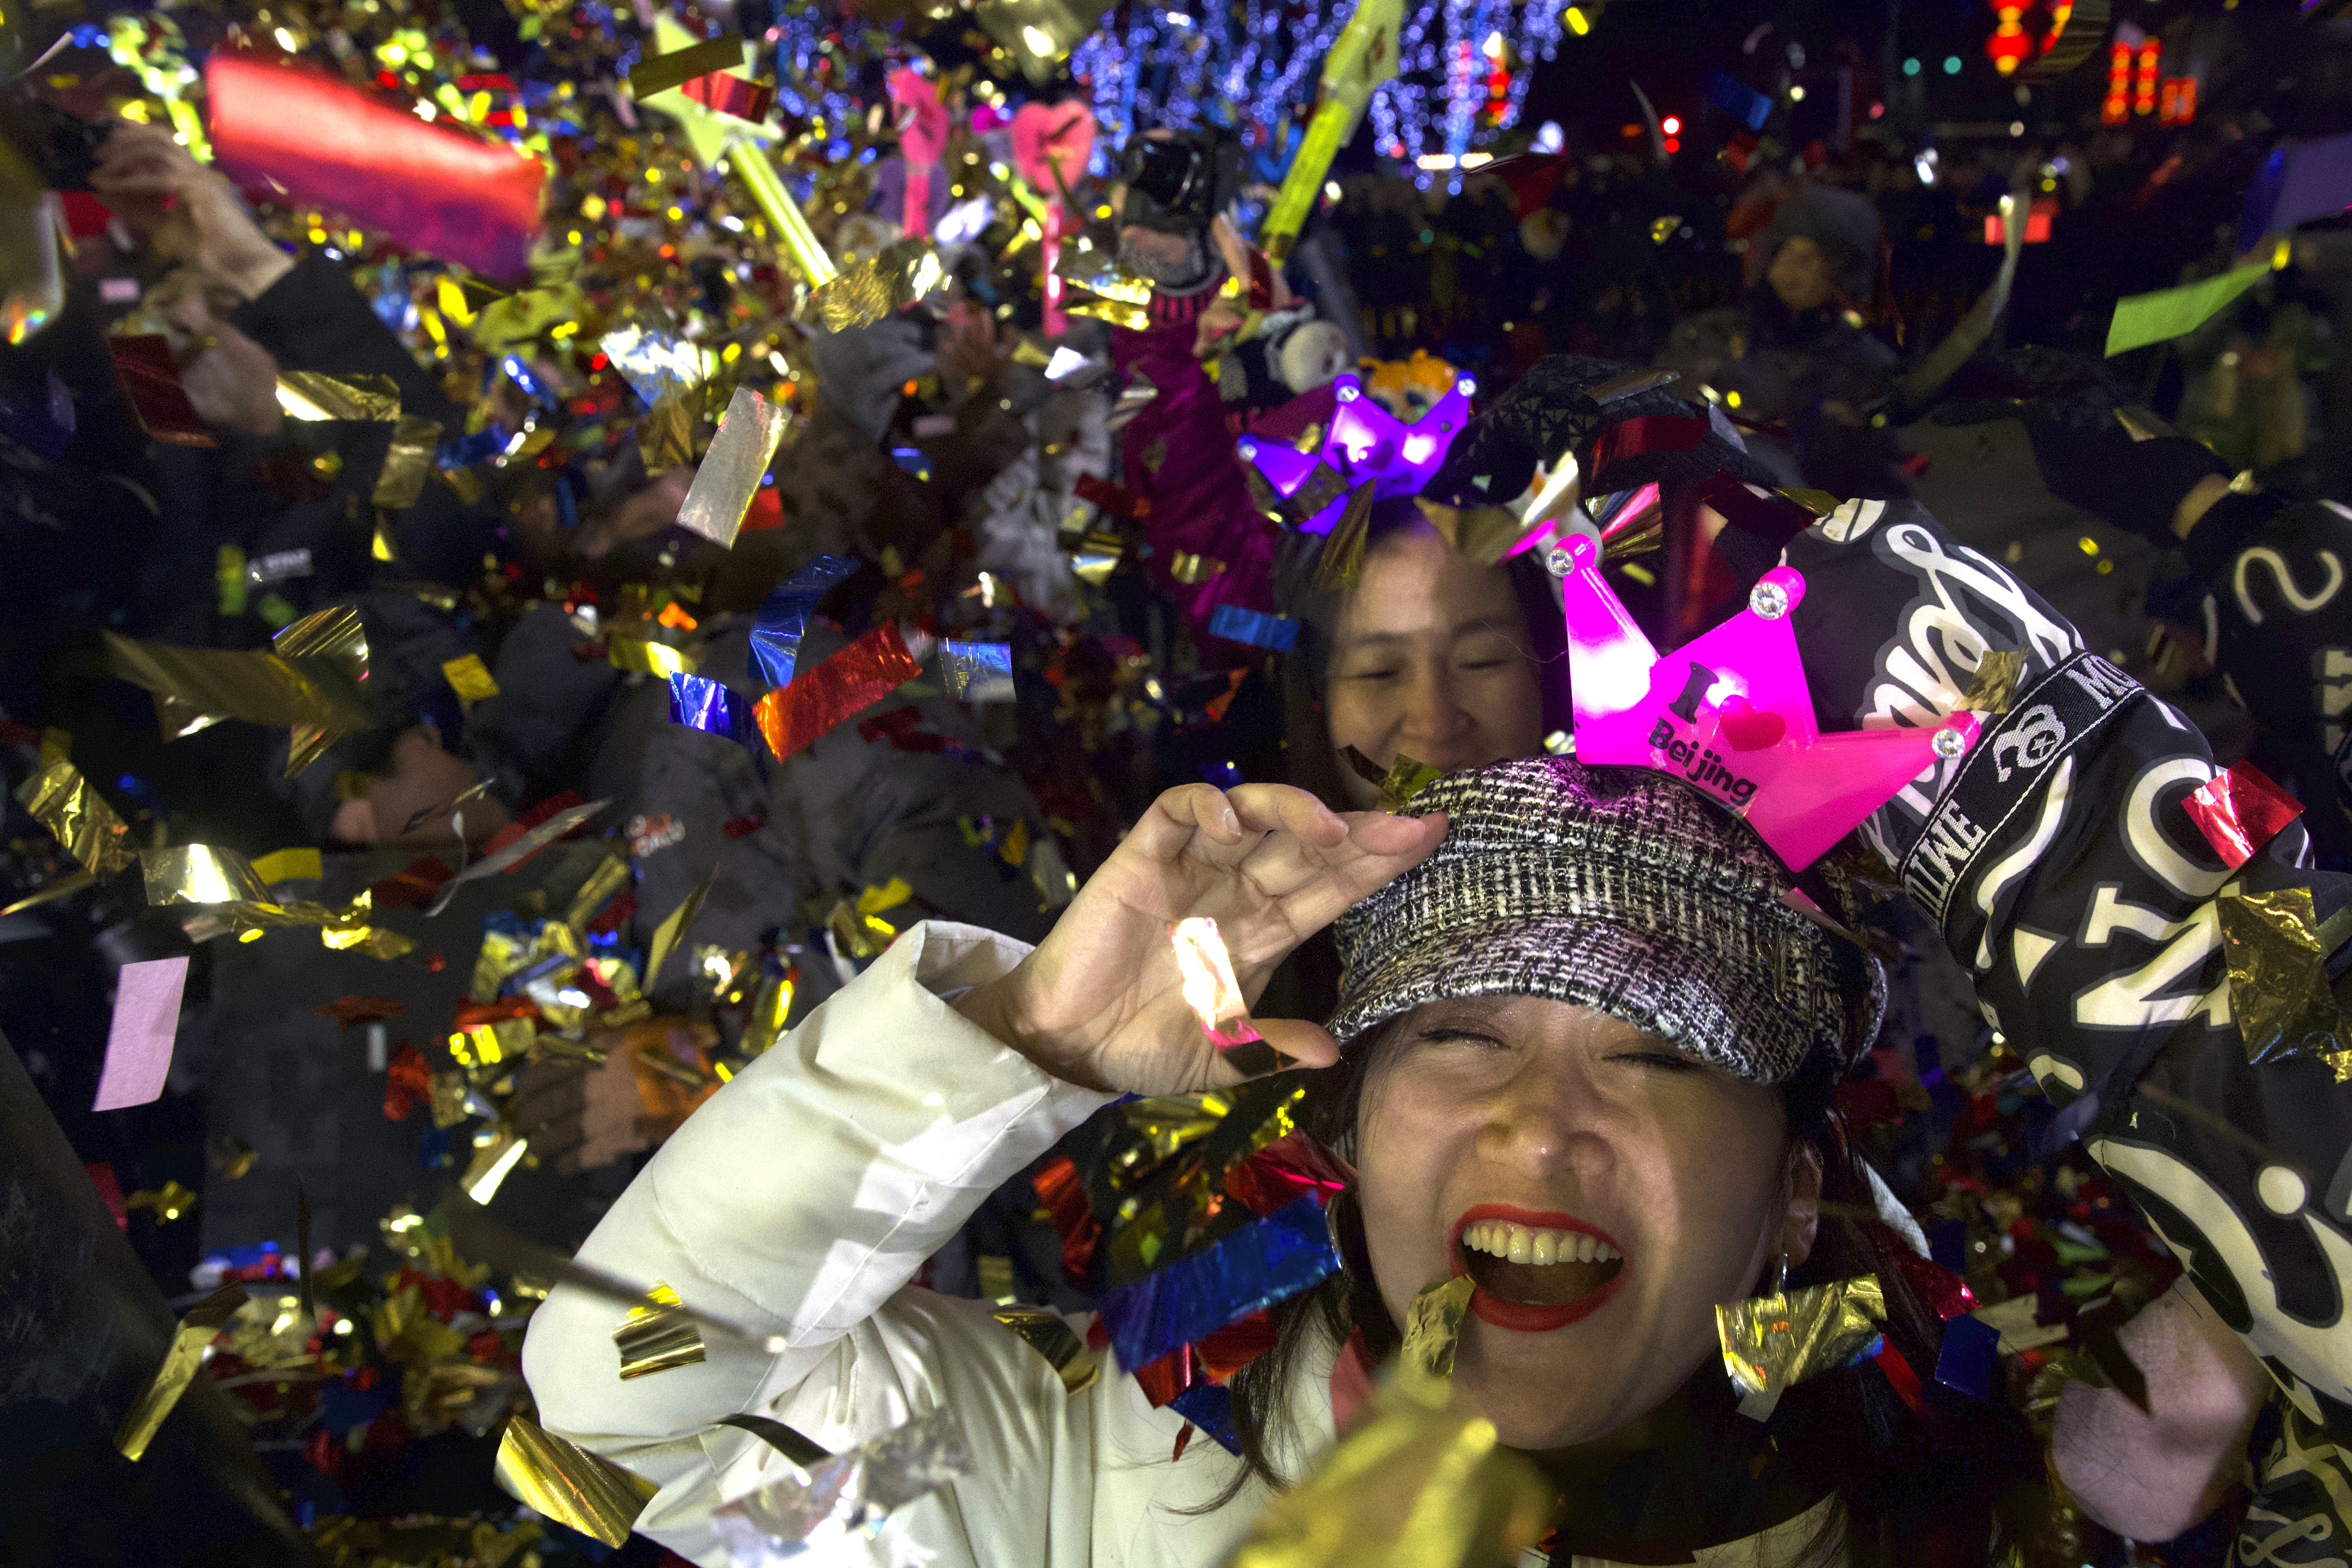 People celebrate the arrival of the year 2020 at a New Year's Eve countdown event near the 2022 Beijing Winter Olympic headquarters in Bejing, on January 1, 2020